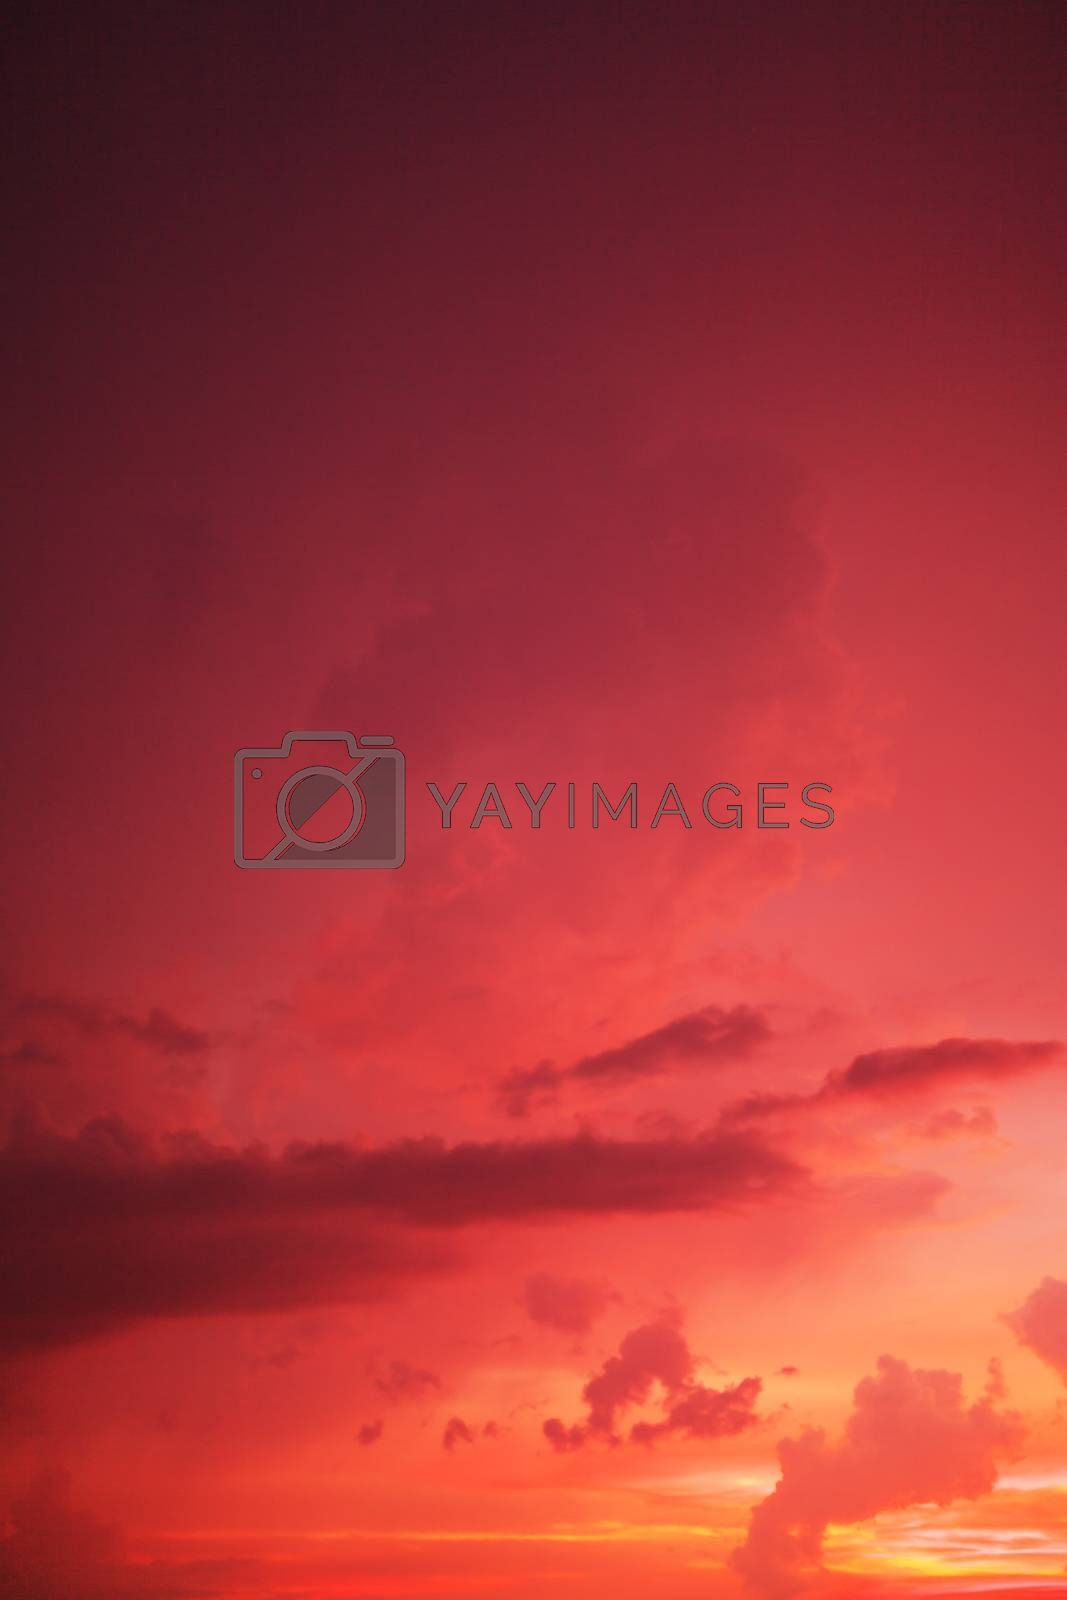 Dramatic red sunset sky with a fiery glow from the setting sun in a weather and nature full frame background, vertical orientation